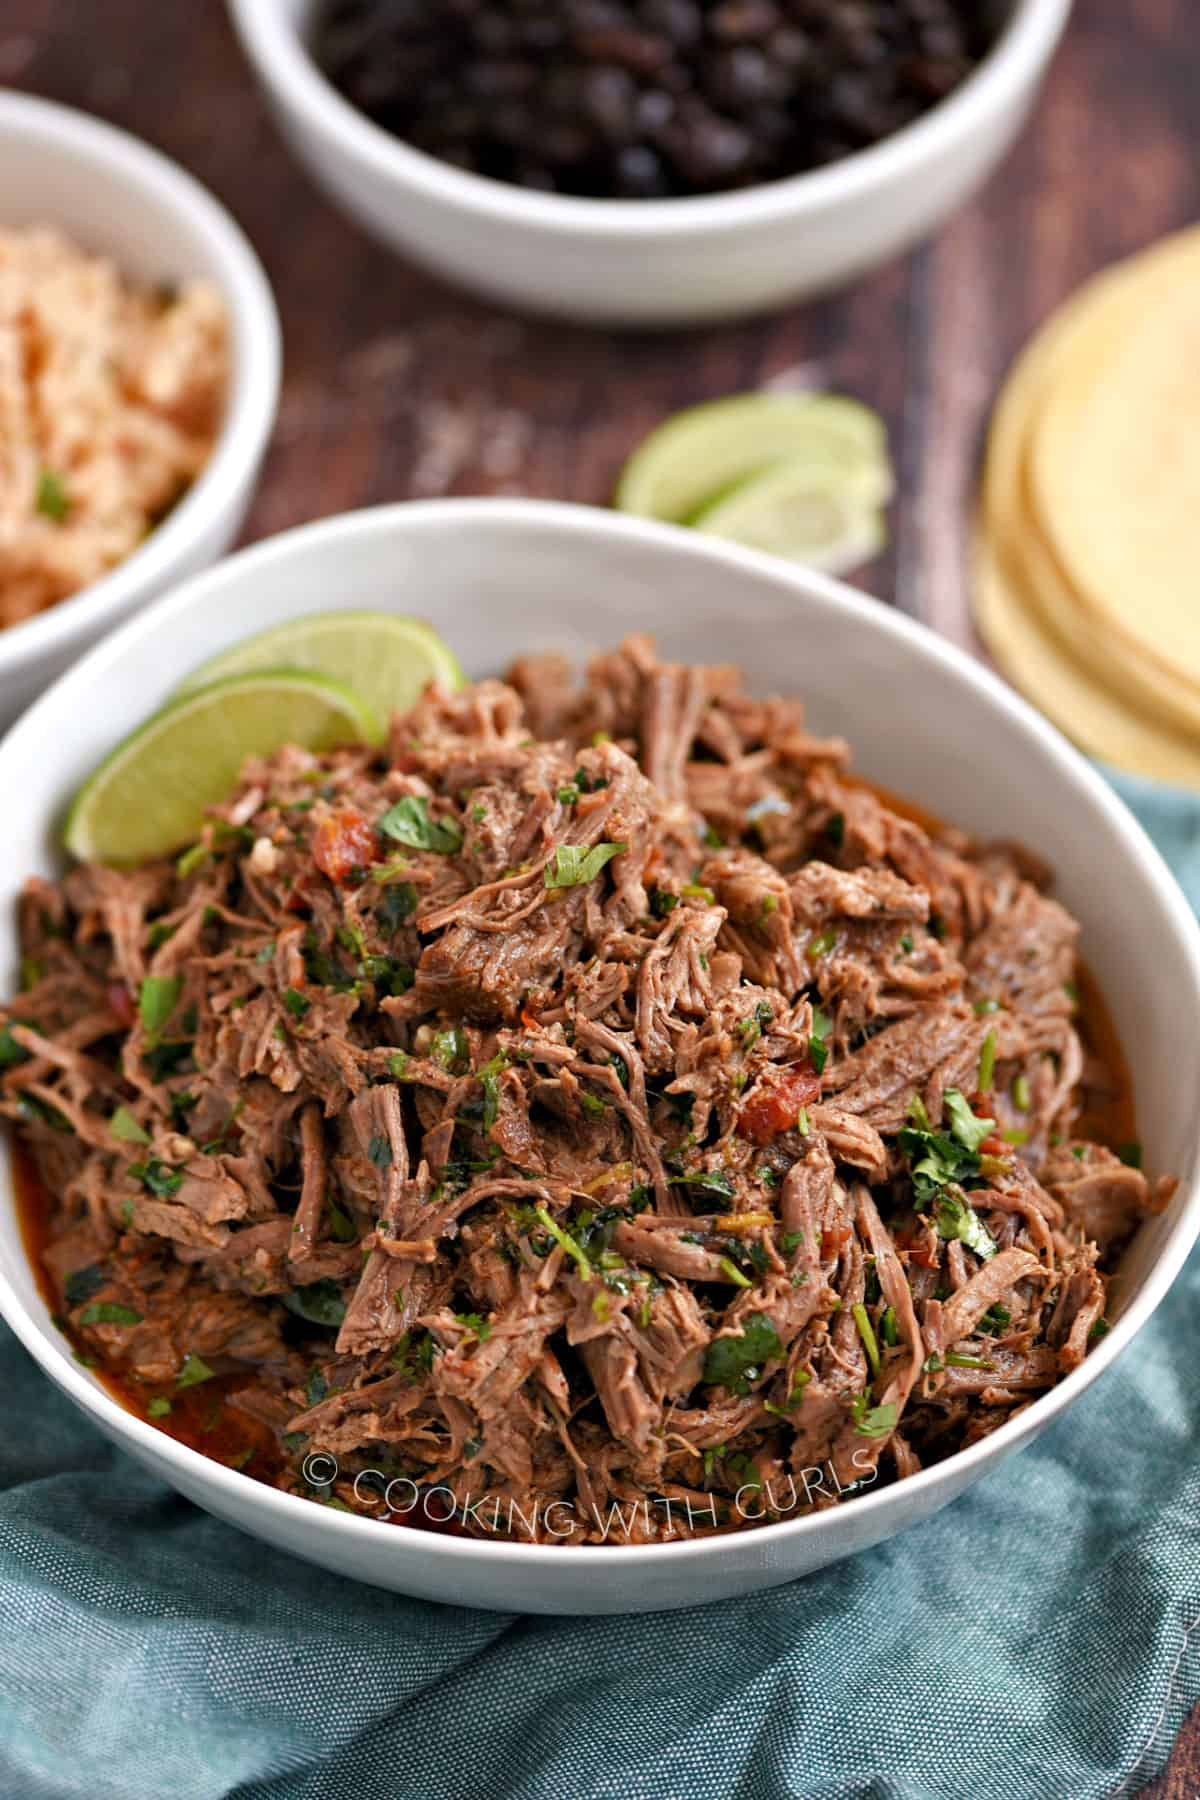 Shredded beef in a white bowl with corn tortillas and bowls of rice and black beans in the background.